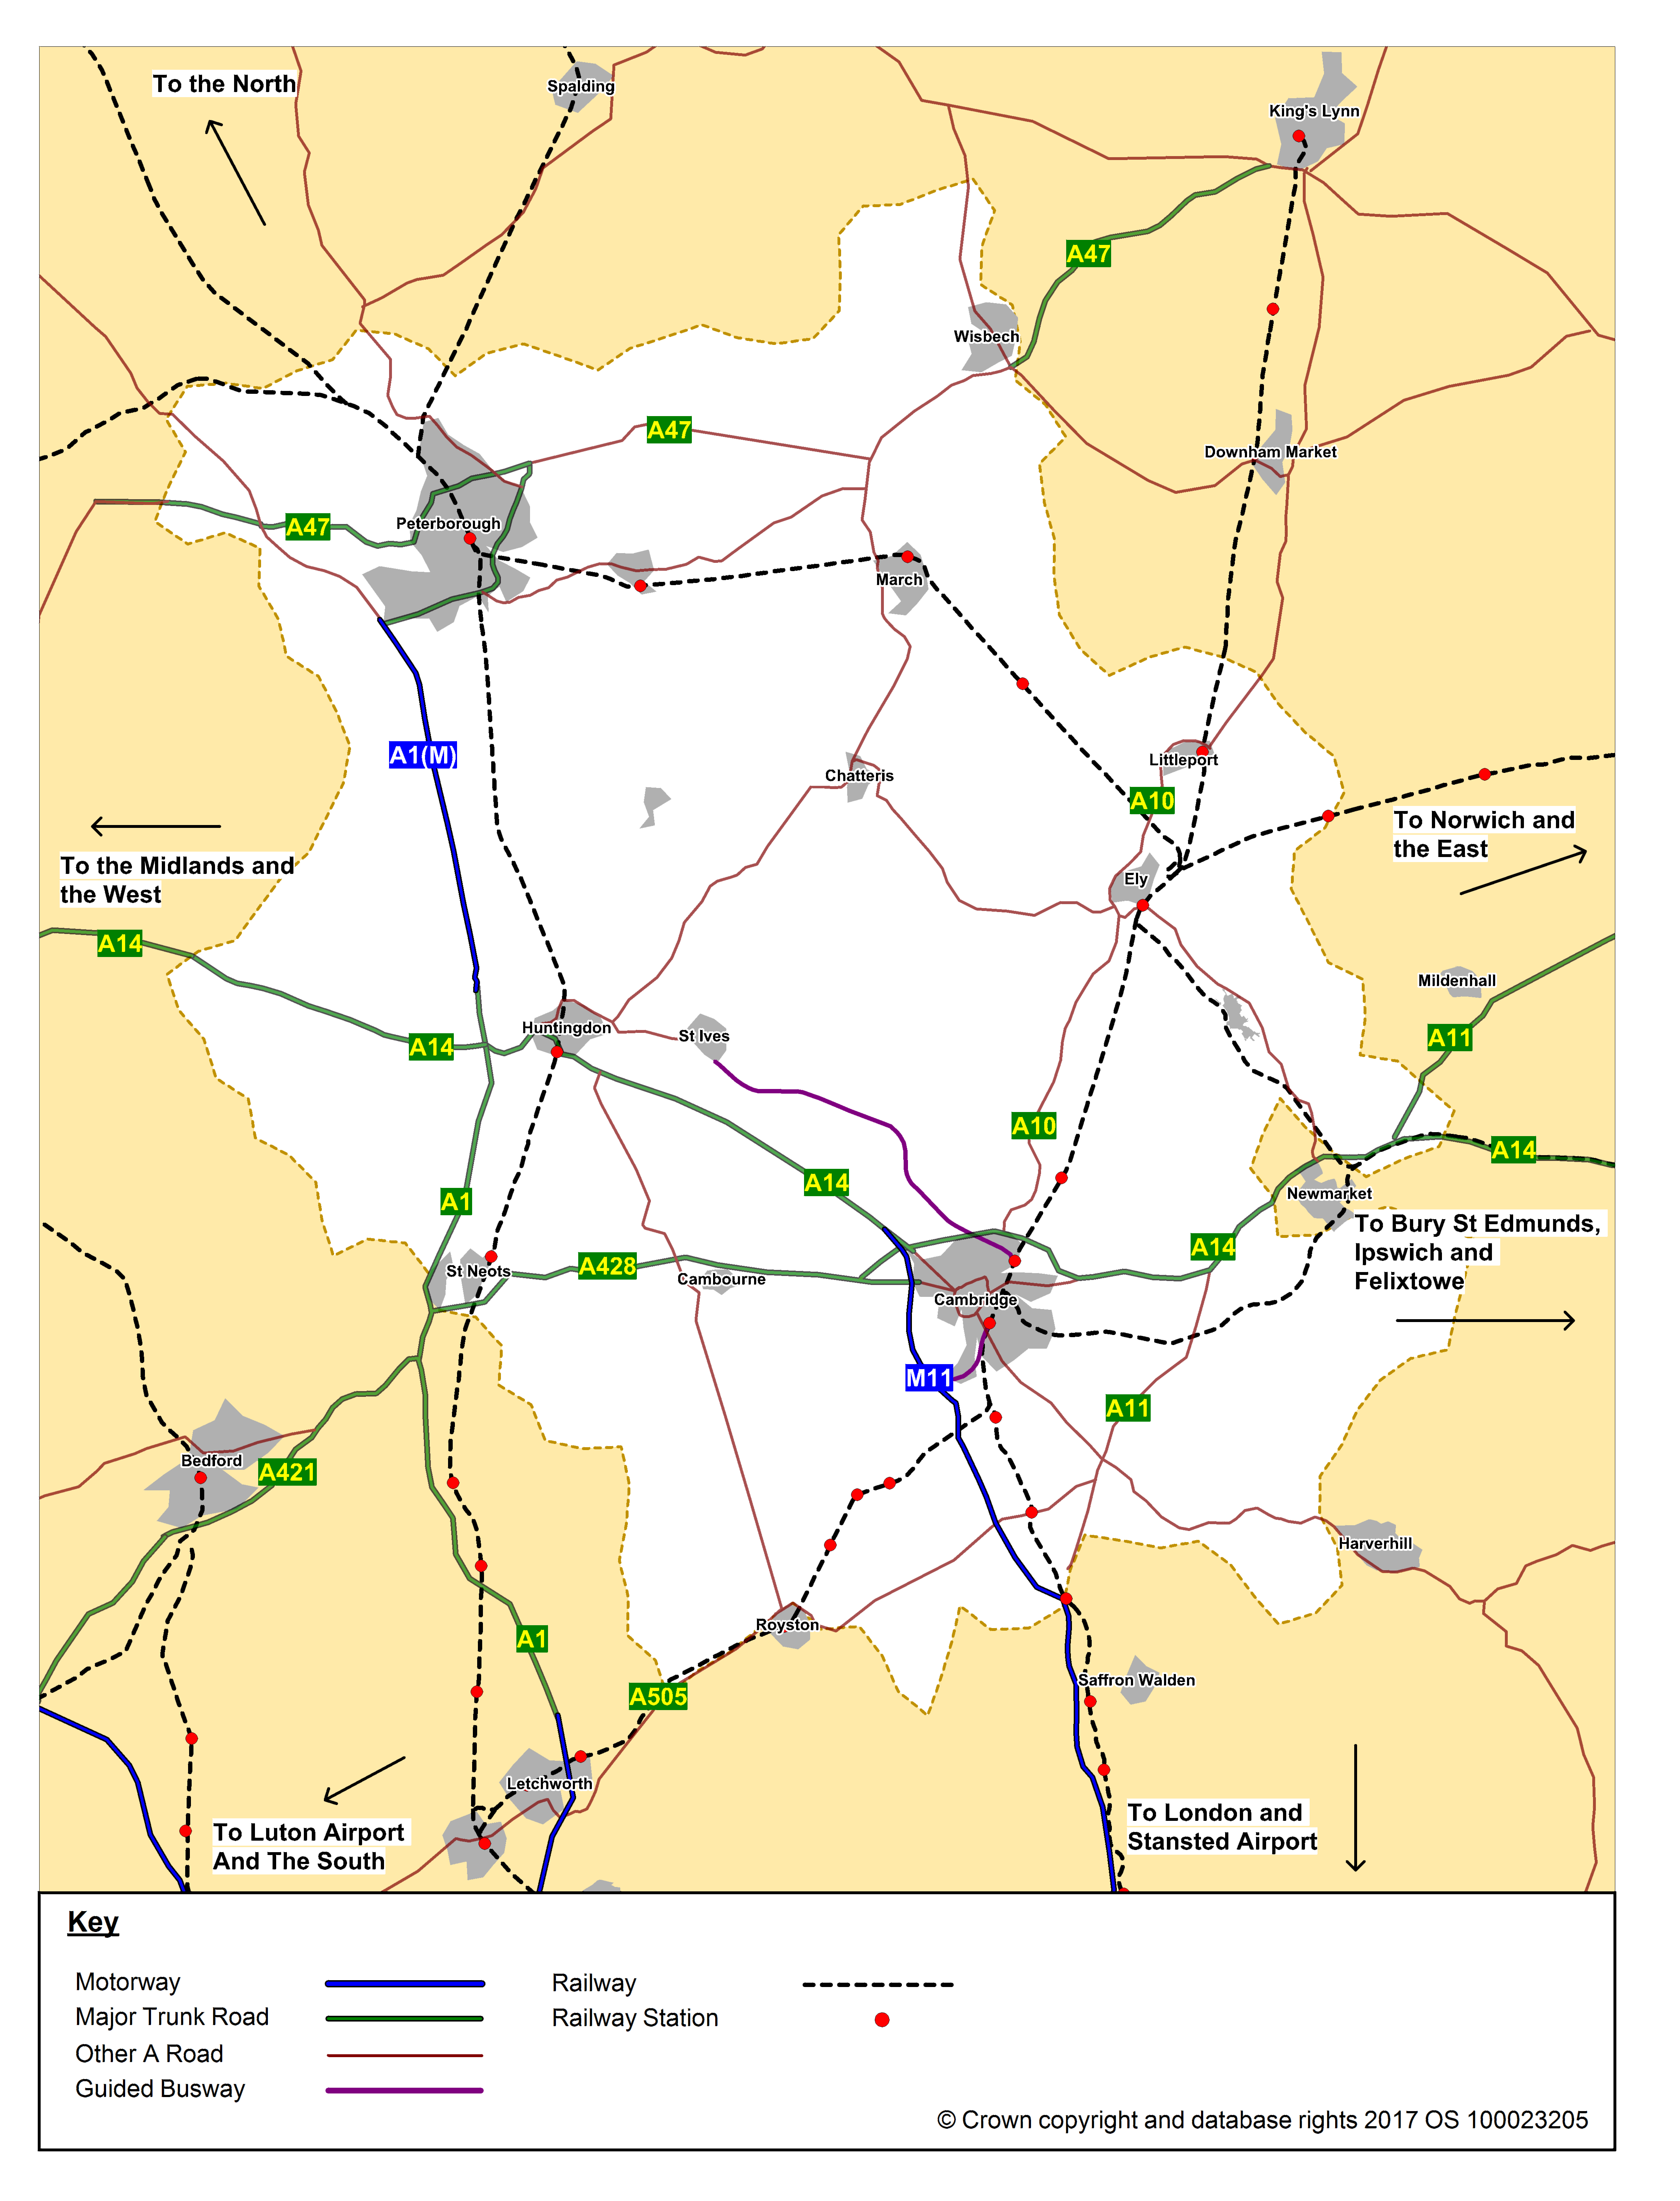 GIS Maps | Cambridgeshire Insight Open Data Gis Maps Download on animation download, python download, excel download, linux download, mac download,